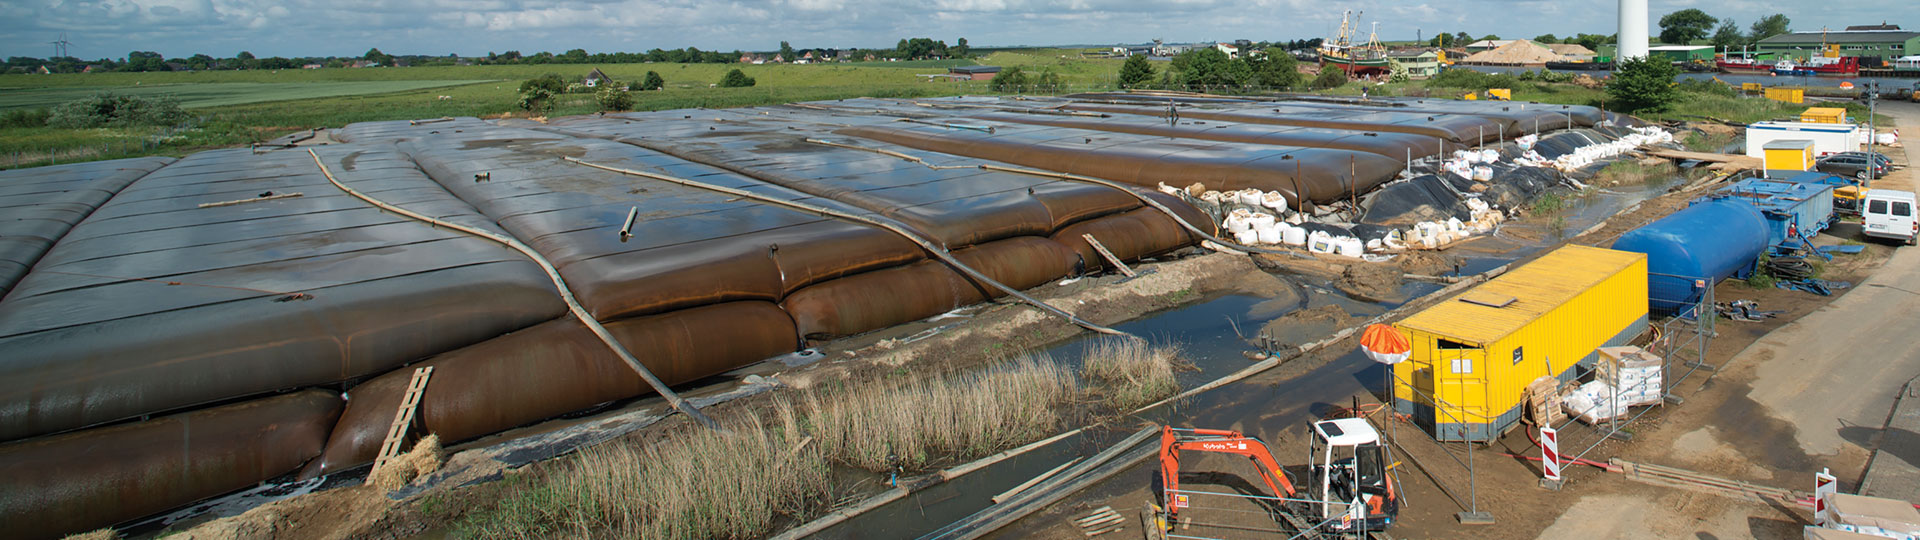 Storage of dewatered silt in geotextile containers.